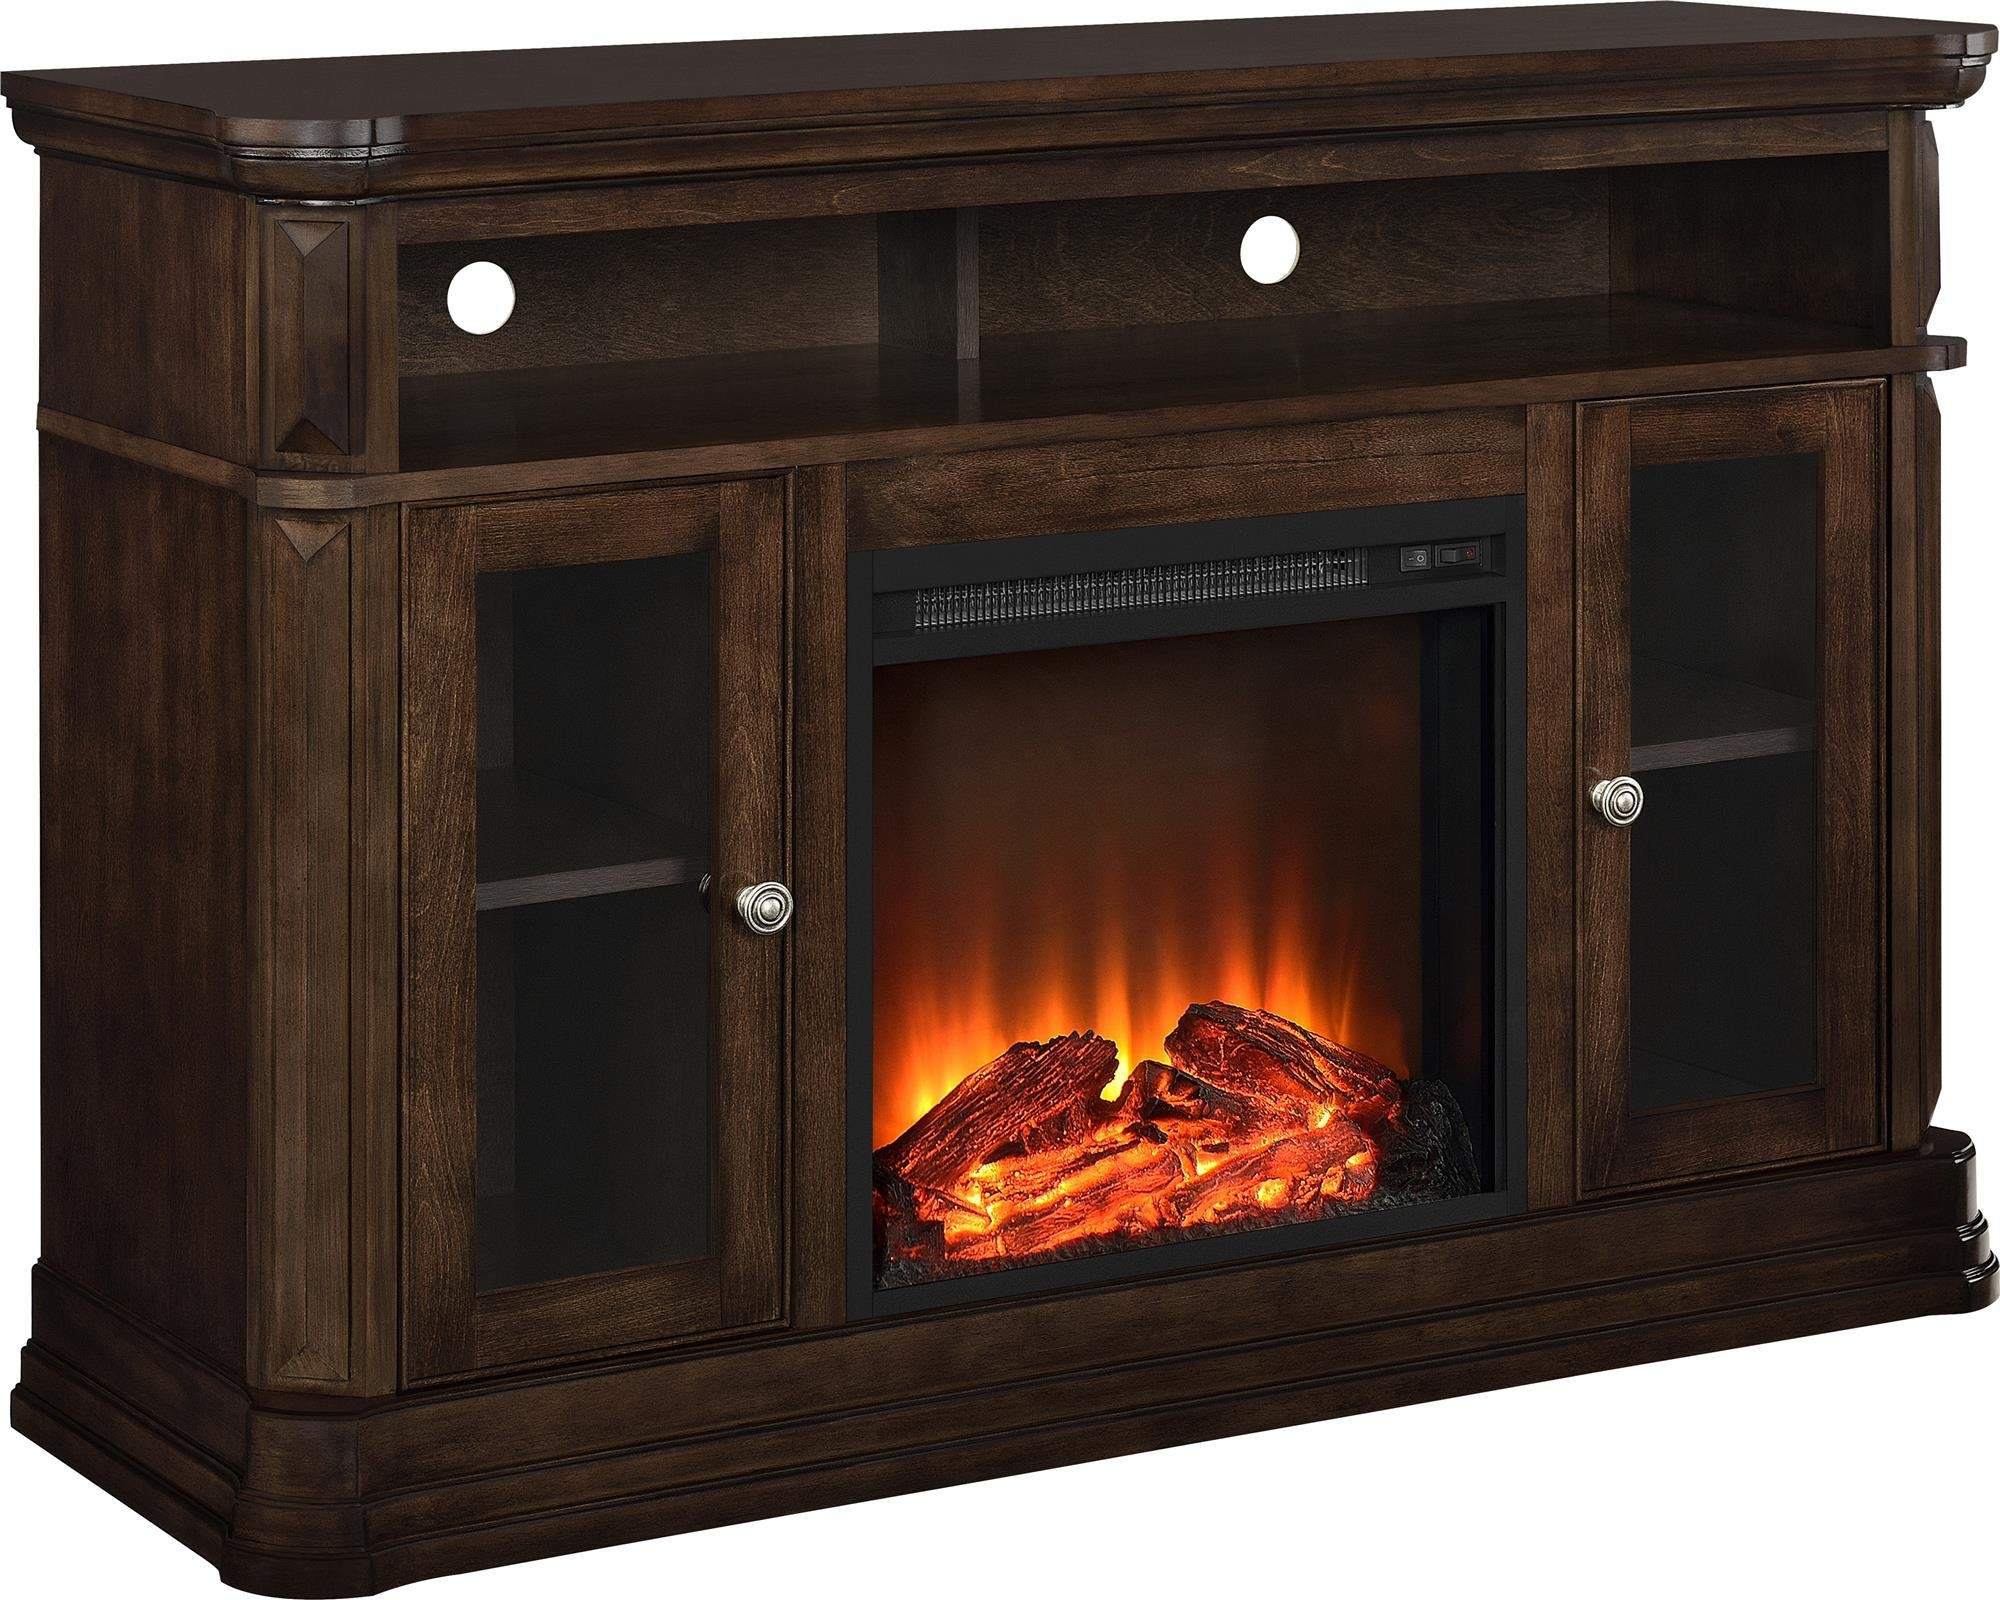 Ameriwood Home Brooklyn Electric Fireplace TV Console for TVs up to 50'', Espresso by Ameriwood Home